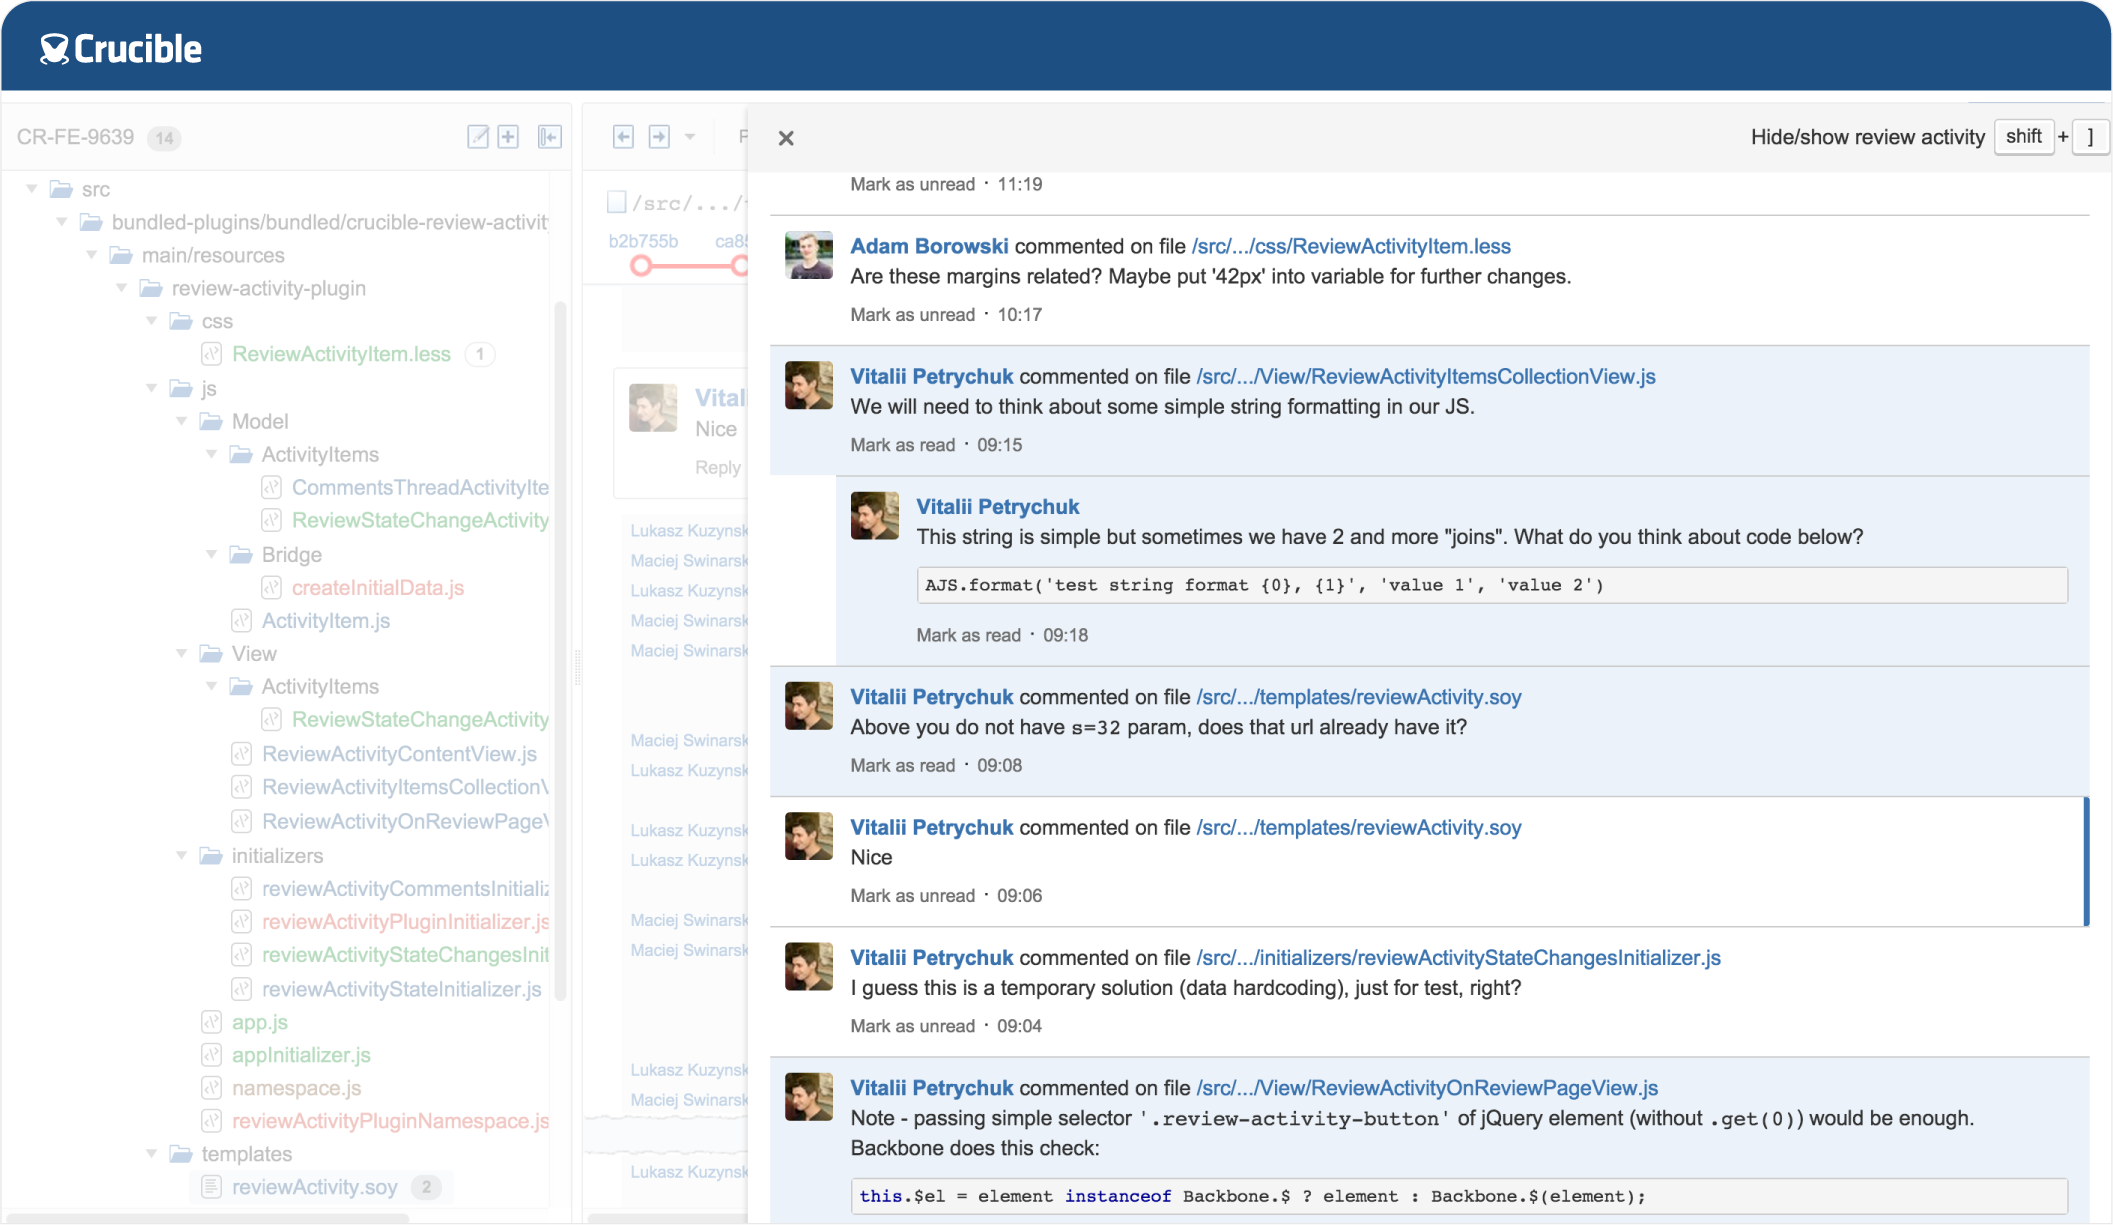 Crucible Code Review Tool for Git, SVN, Perforce and More